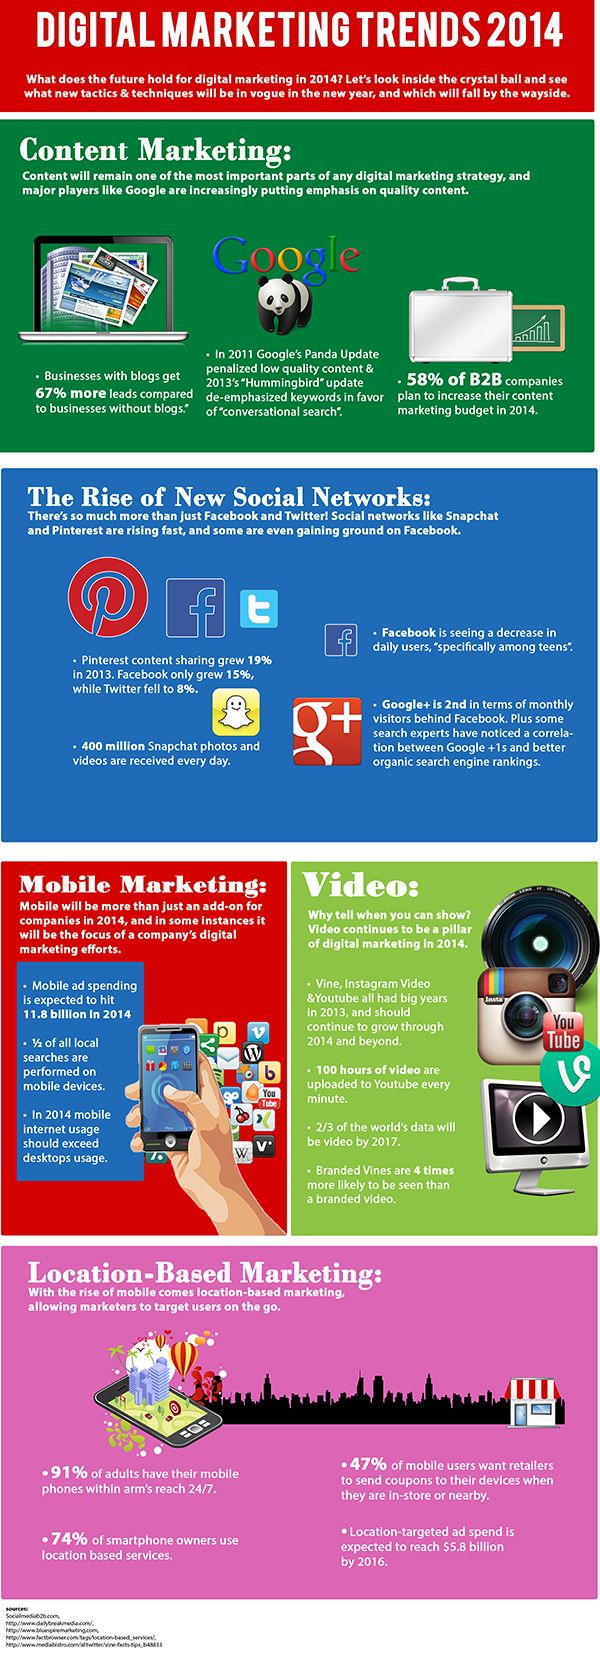 The best 2014 Social Media Marketing Trends 1e380add0648bdbf925f7a8e89767b11